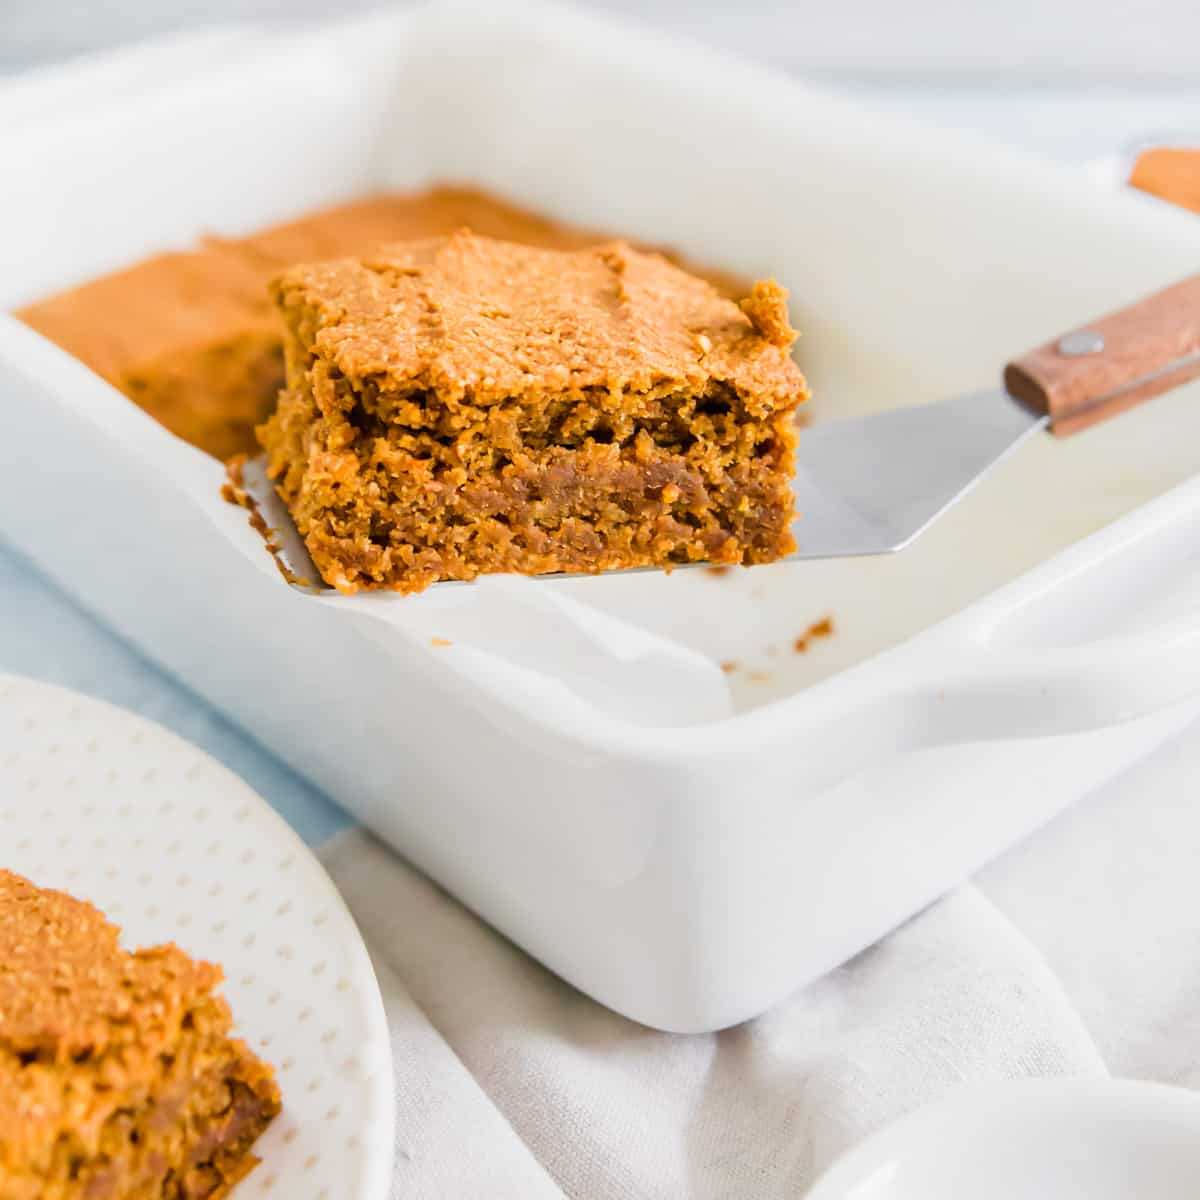 Soft and moist in the middle, these pumpkin bars are packed with fall spices and flavor.